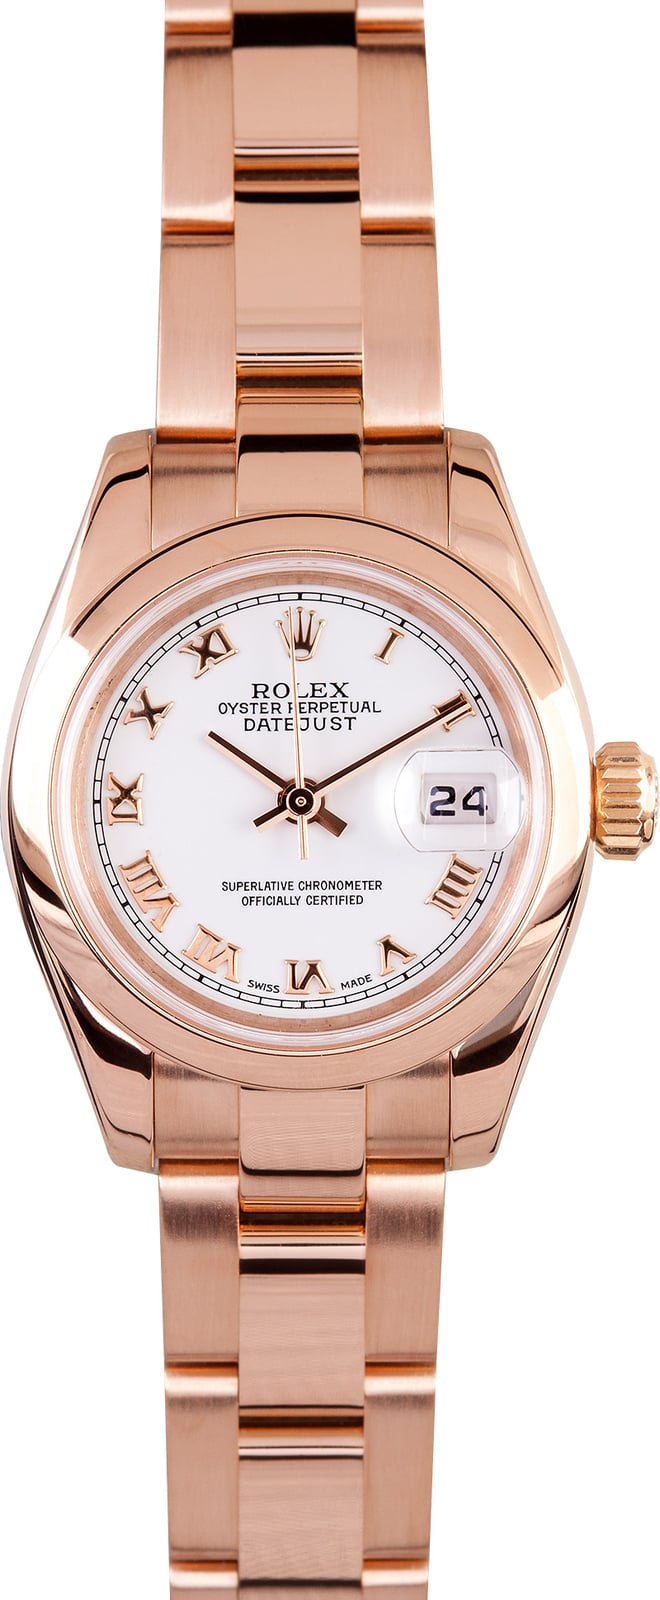 lady rolex datejust rose gold save at bobs watches